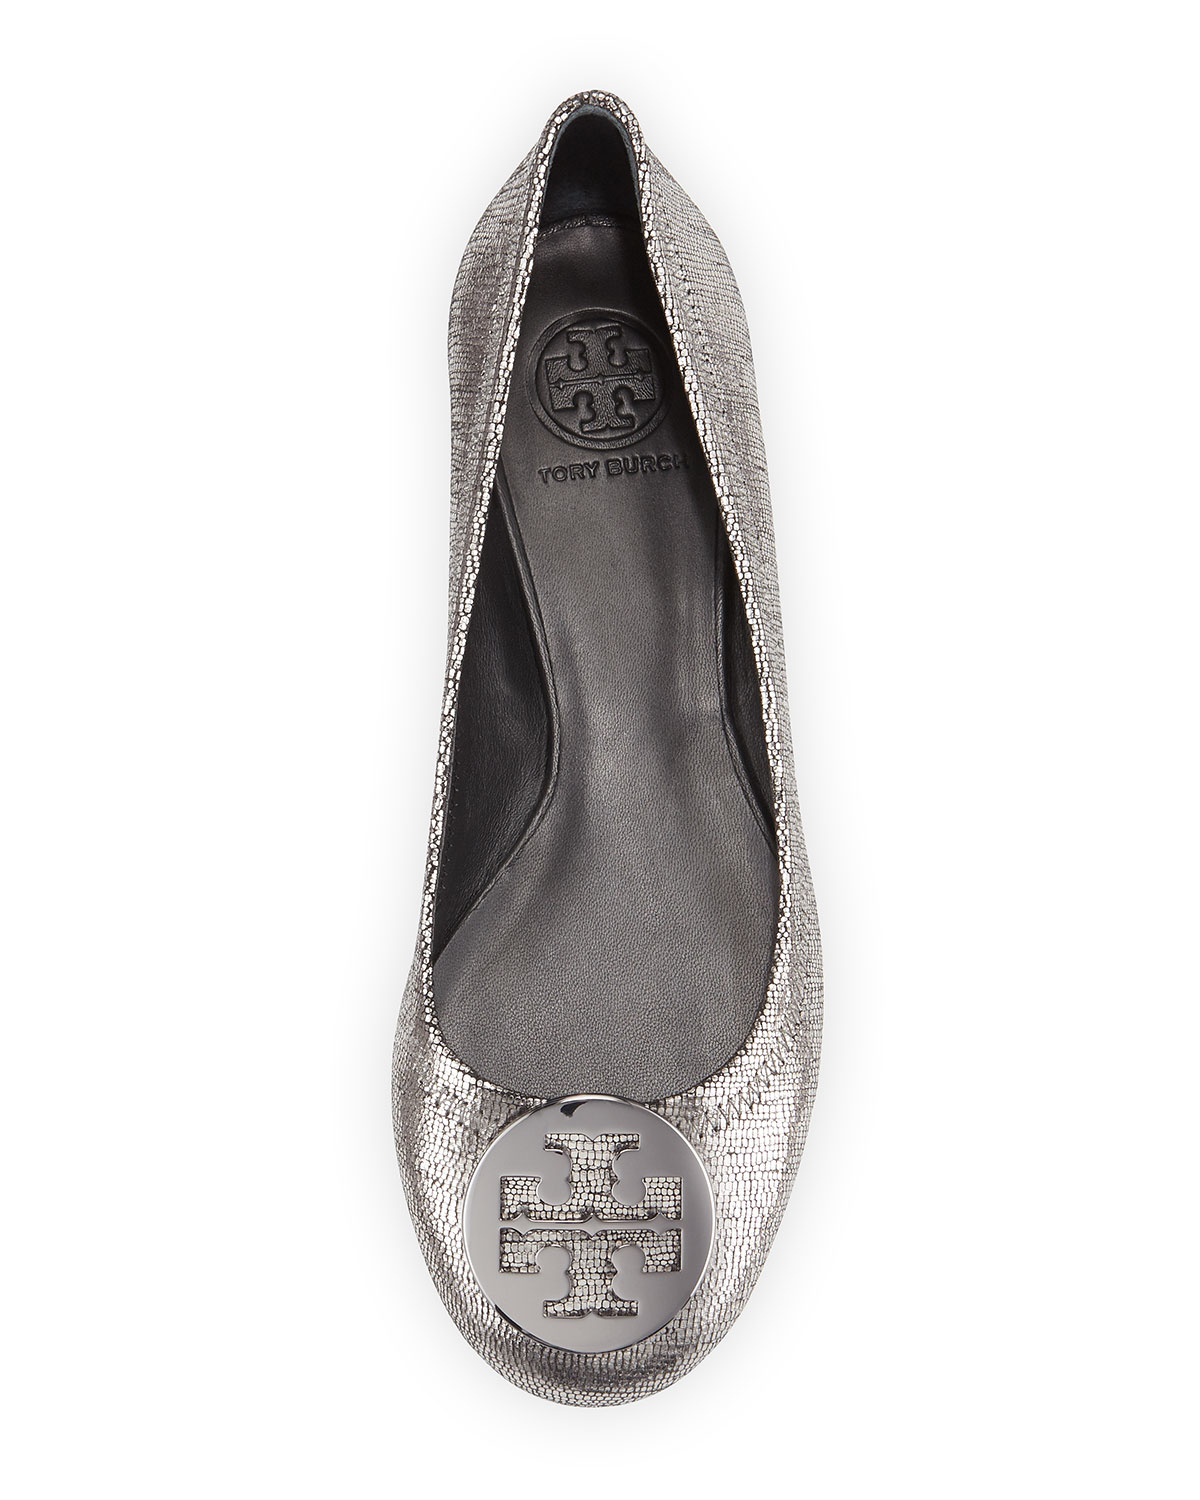 Shop for womens silver ballet flats online at Target. Free shipping on purchases over $35 and save 5% every day with your Target REDcard.